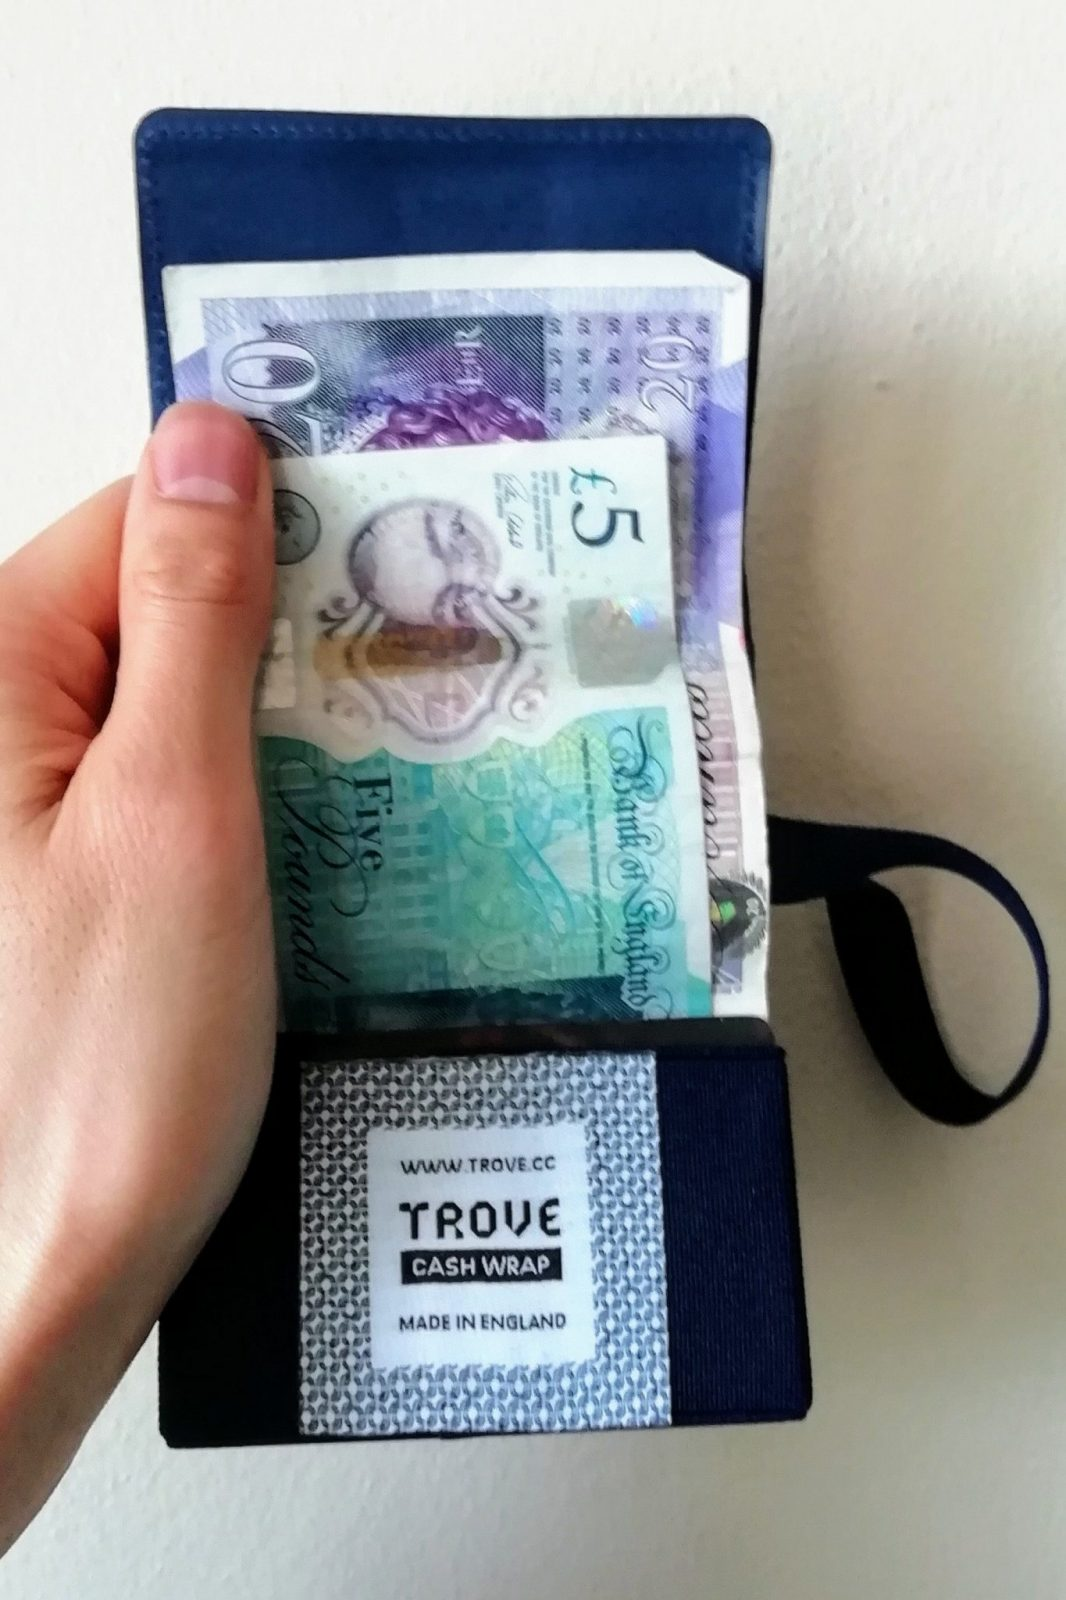 Trove Swift & Cash Wrap Wallet Review: The Perfect Travel Wallet? 7